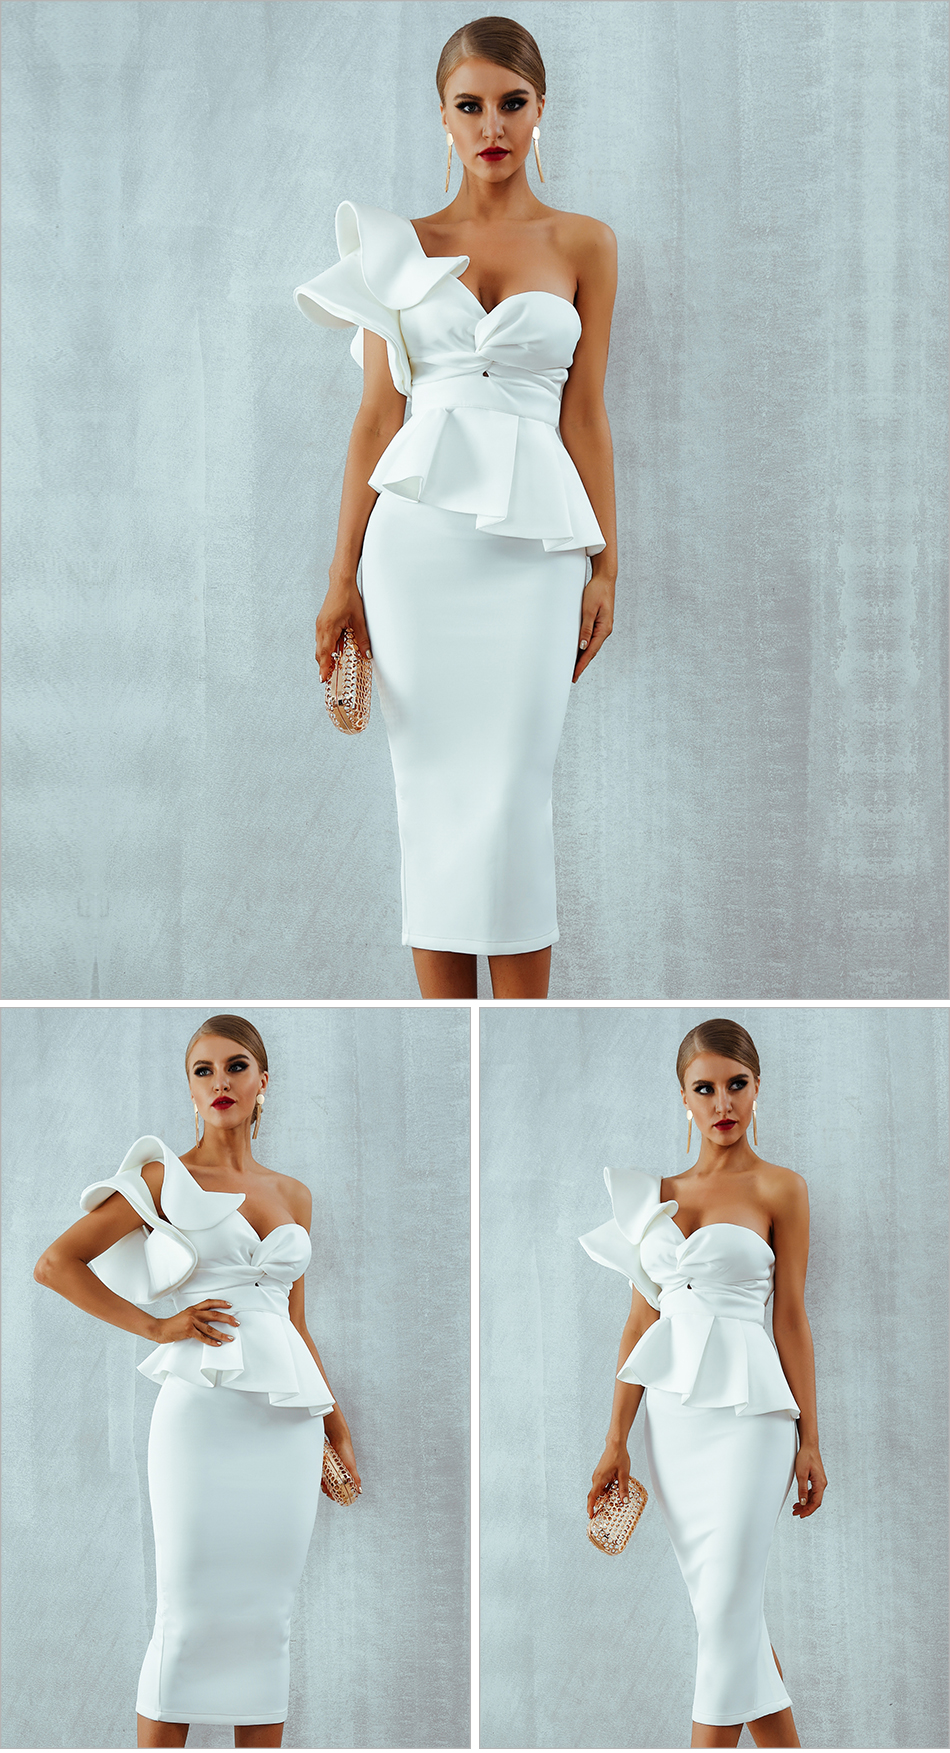 Adyce Celebrity Evening Party Dress Women 19 Sexy Bodycon Sets One Shoulder Ruffles Short Sleeve Strapless Club Dress Vestidos 10